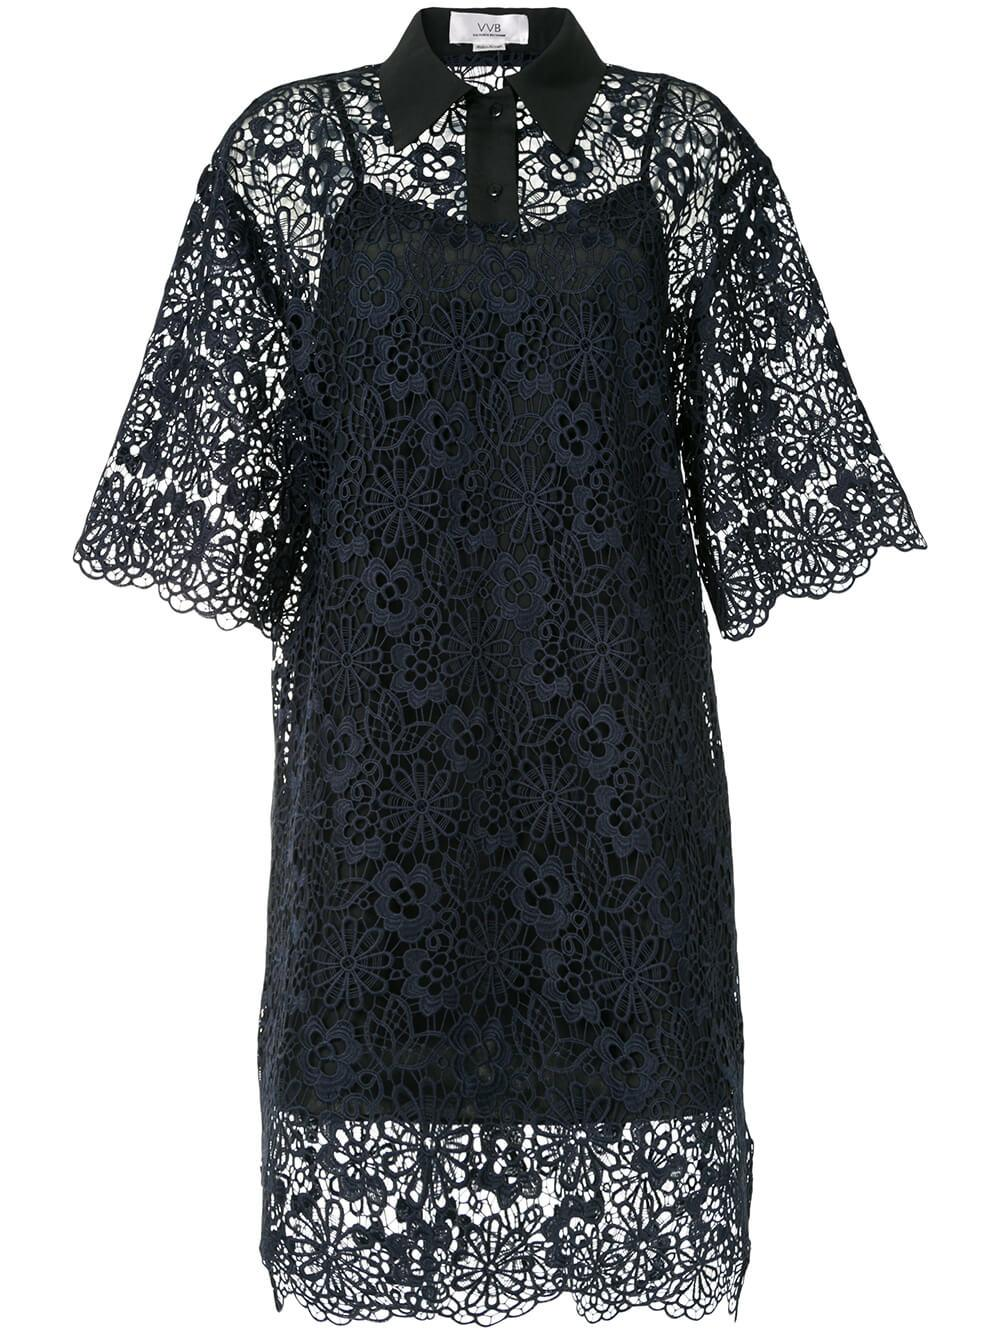 Lace Polo Dress Item # 2220WDR001138A